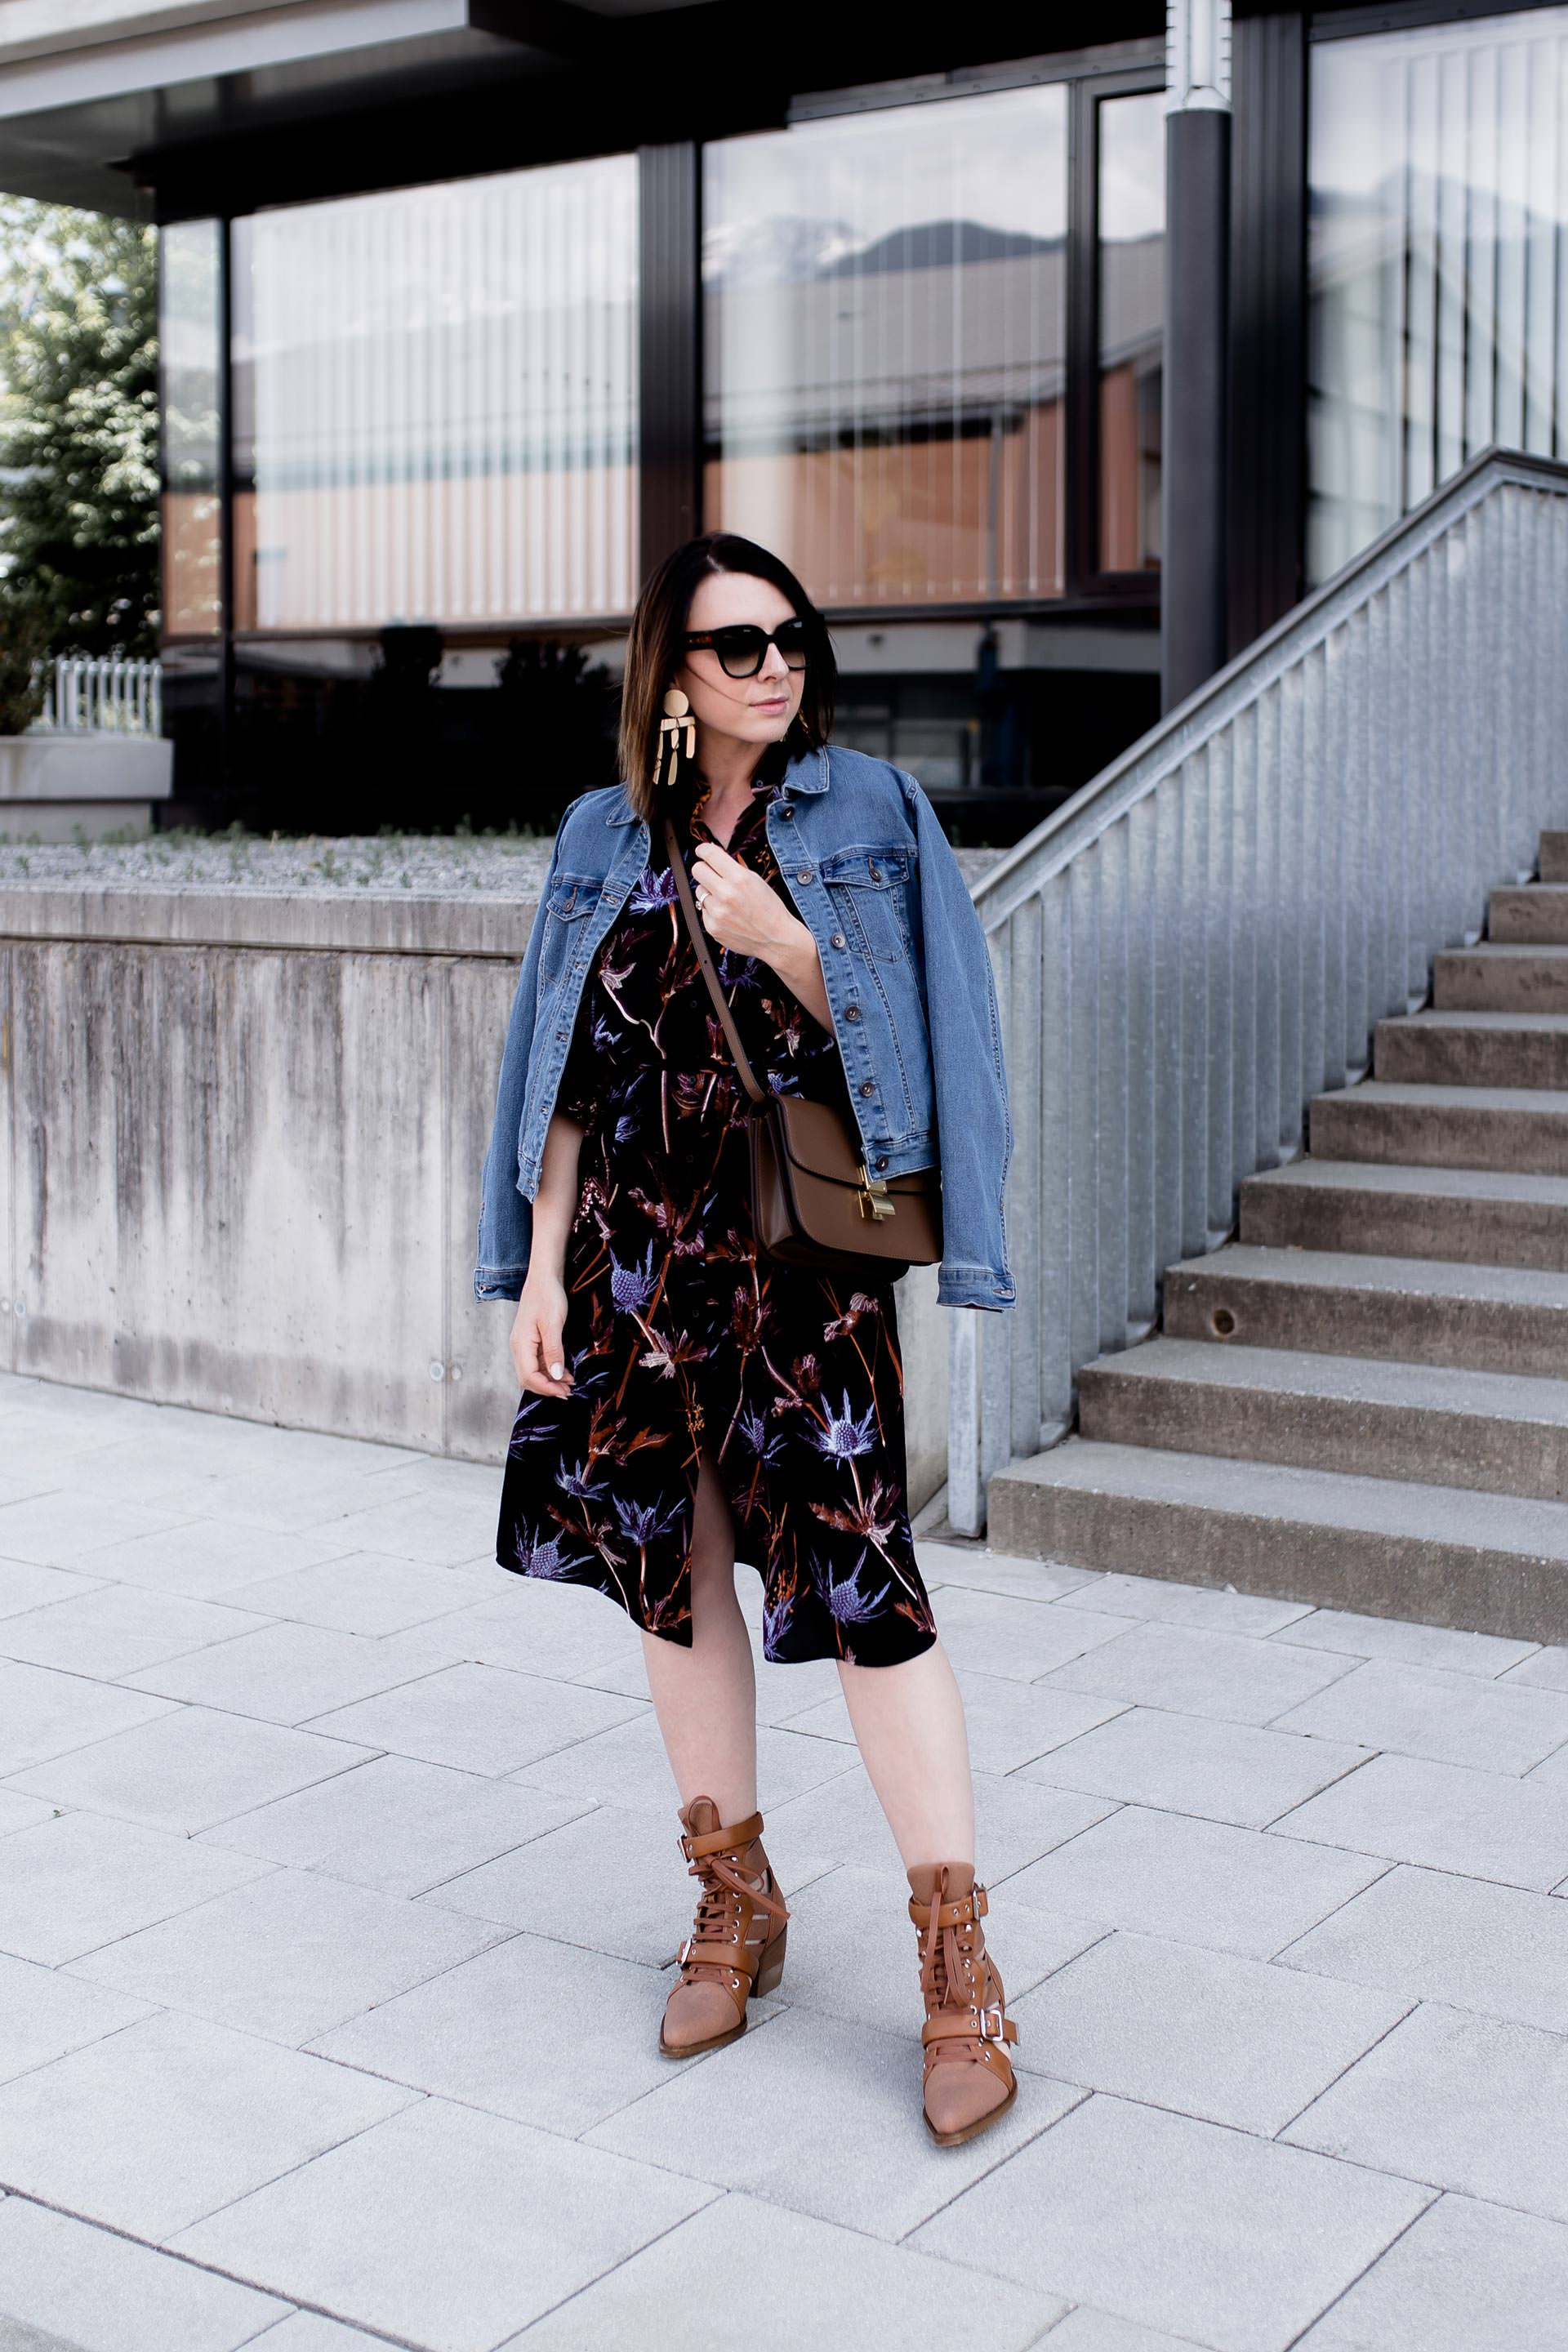 Outfit mit chloé rylee cutout leather and canvas ankle boots, Jeansjacke und Kleid mit Ankle Boots kombinieren, Midikleid Style, Chloé Boots, Fashion Blogger, Mode Tipps, Online Shopping Guide, www.whoismocca.com